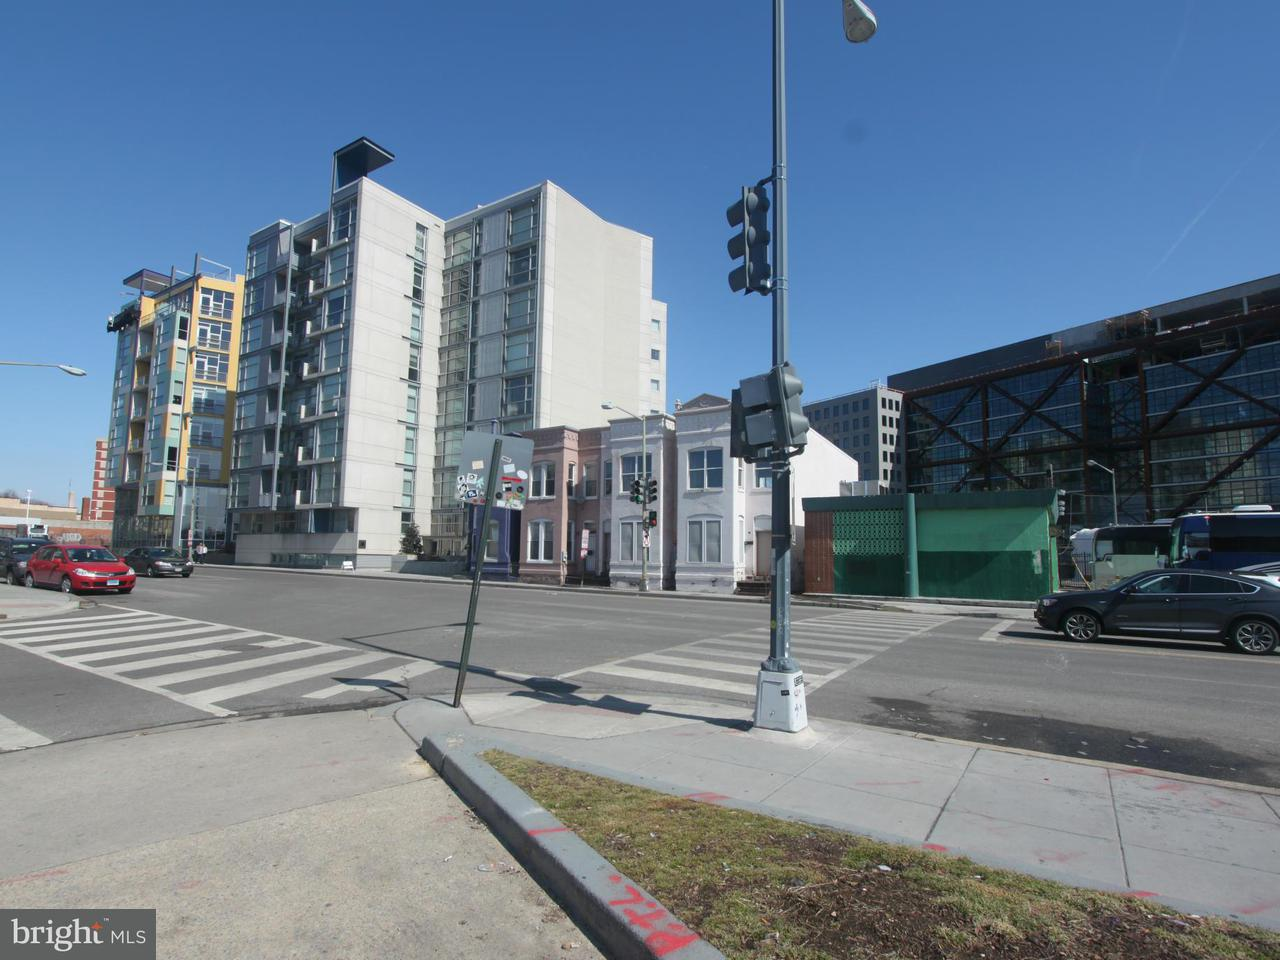 Additional photo for property listing at 911 V St Nw 911 V St Nw Washington, コロンビア特別区 20001 アメリカ合衆国